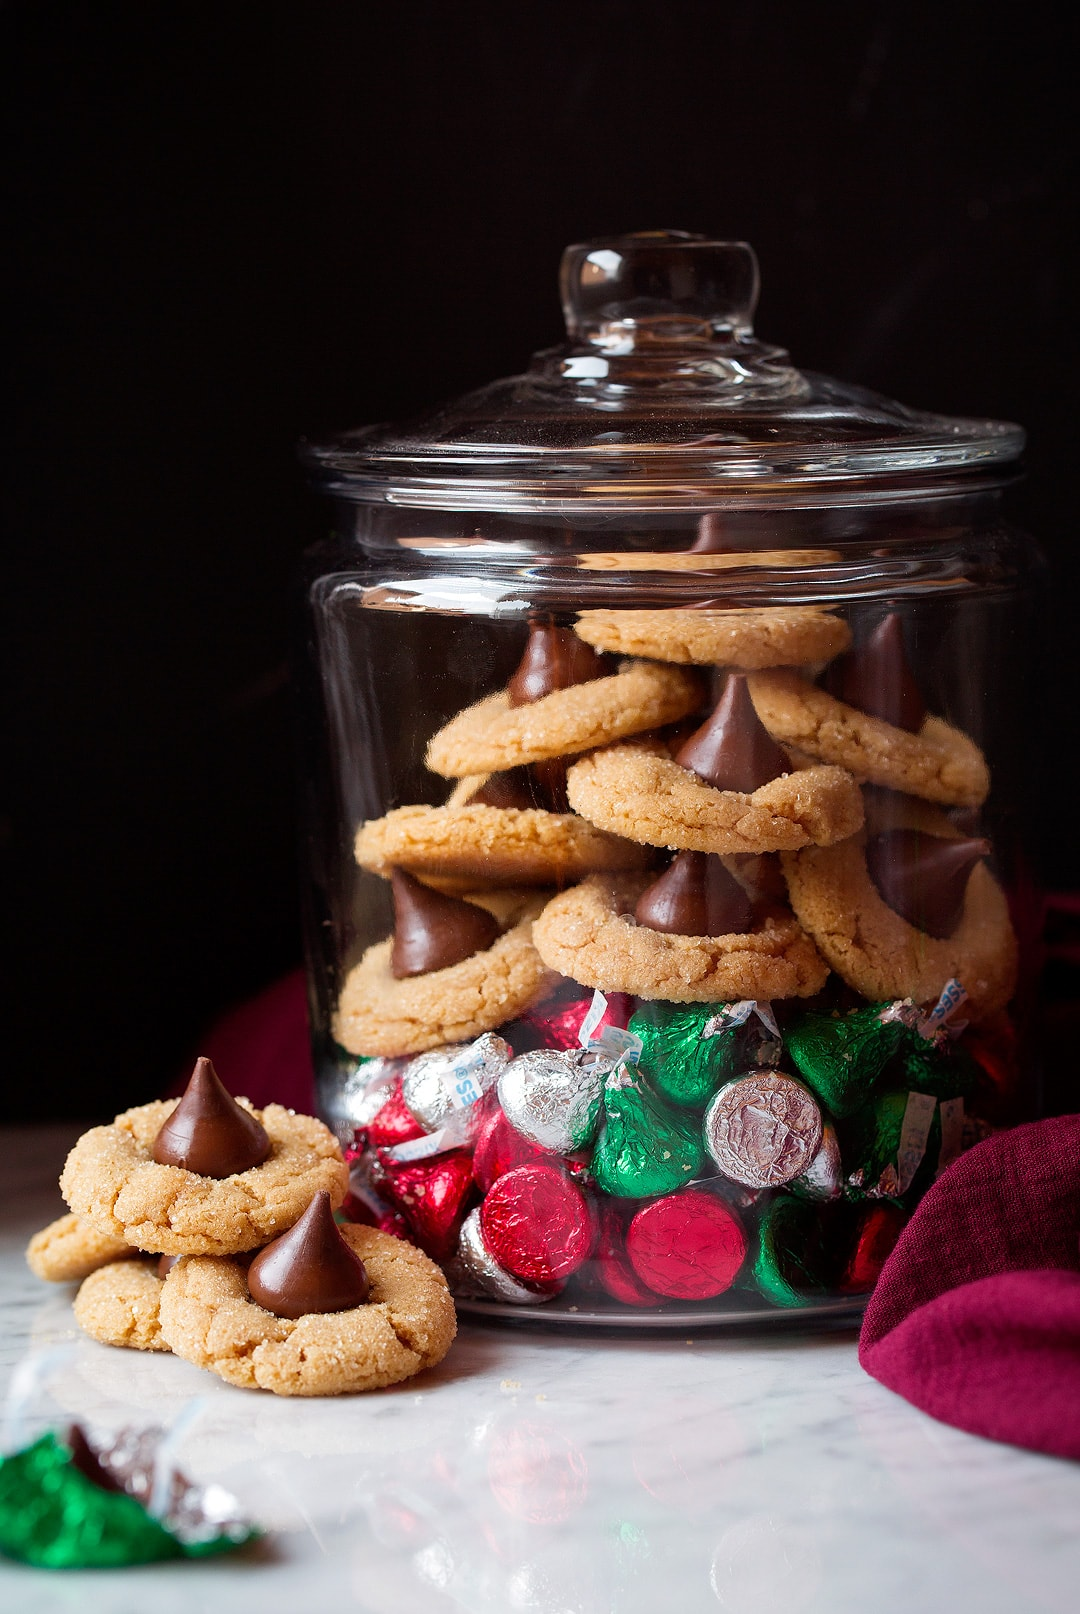 Peanut Butter Blossoms shown here in a clear storage jar over a pile of Hershey's Kisses. Container is set on a marble surface with a black background.